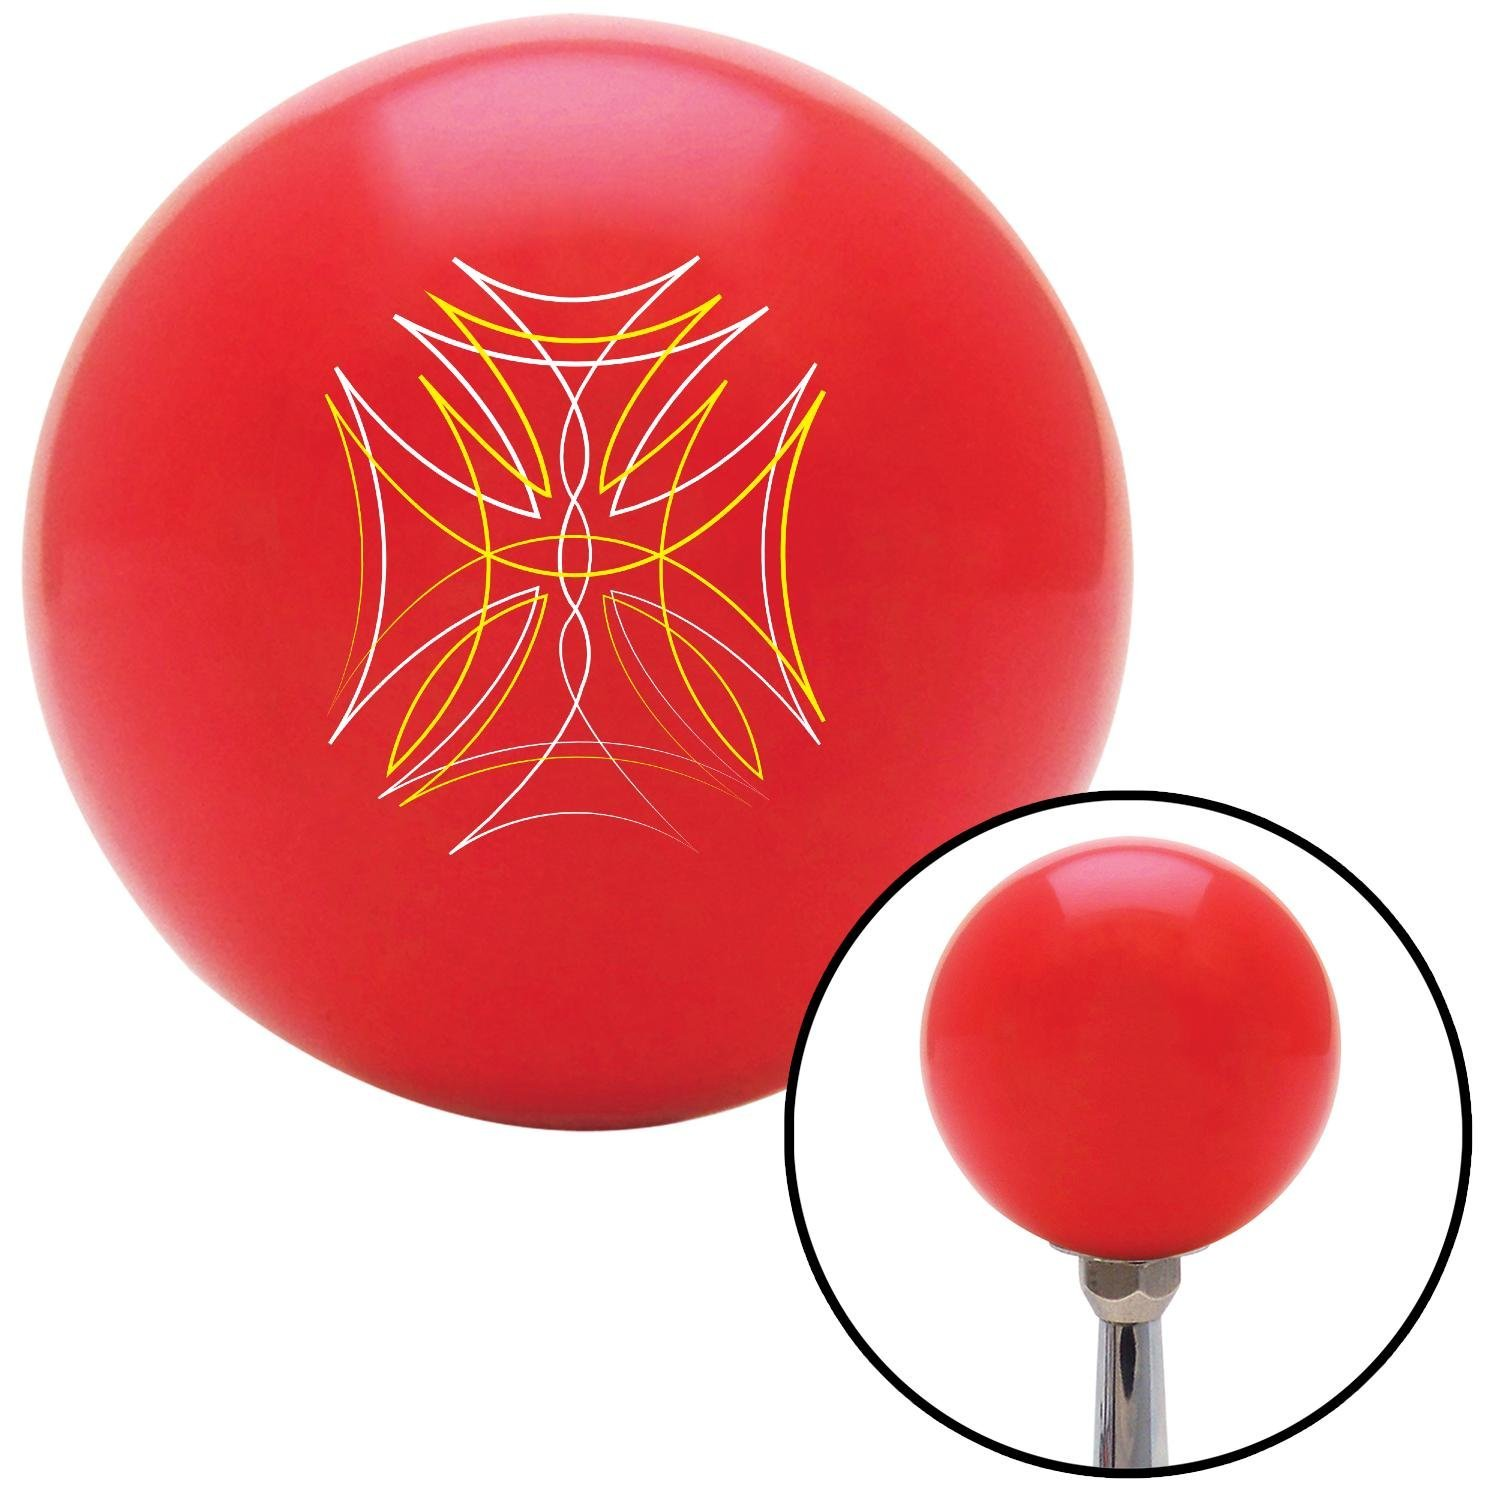 White and Yellow Pinstripe 2 American Shifter 150513 Red Shift Knob with M16 x 1.5 Insert